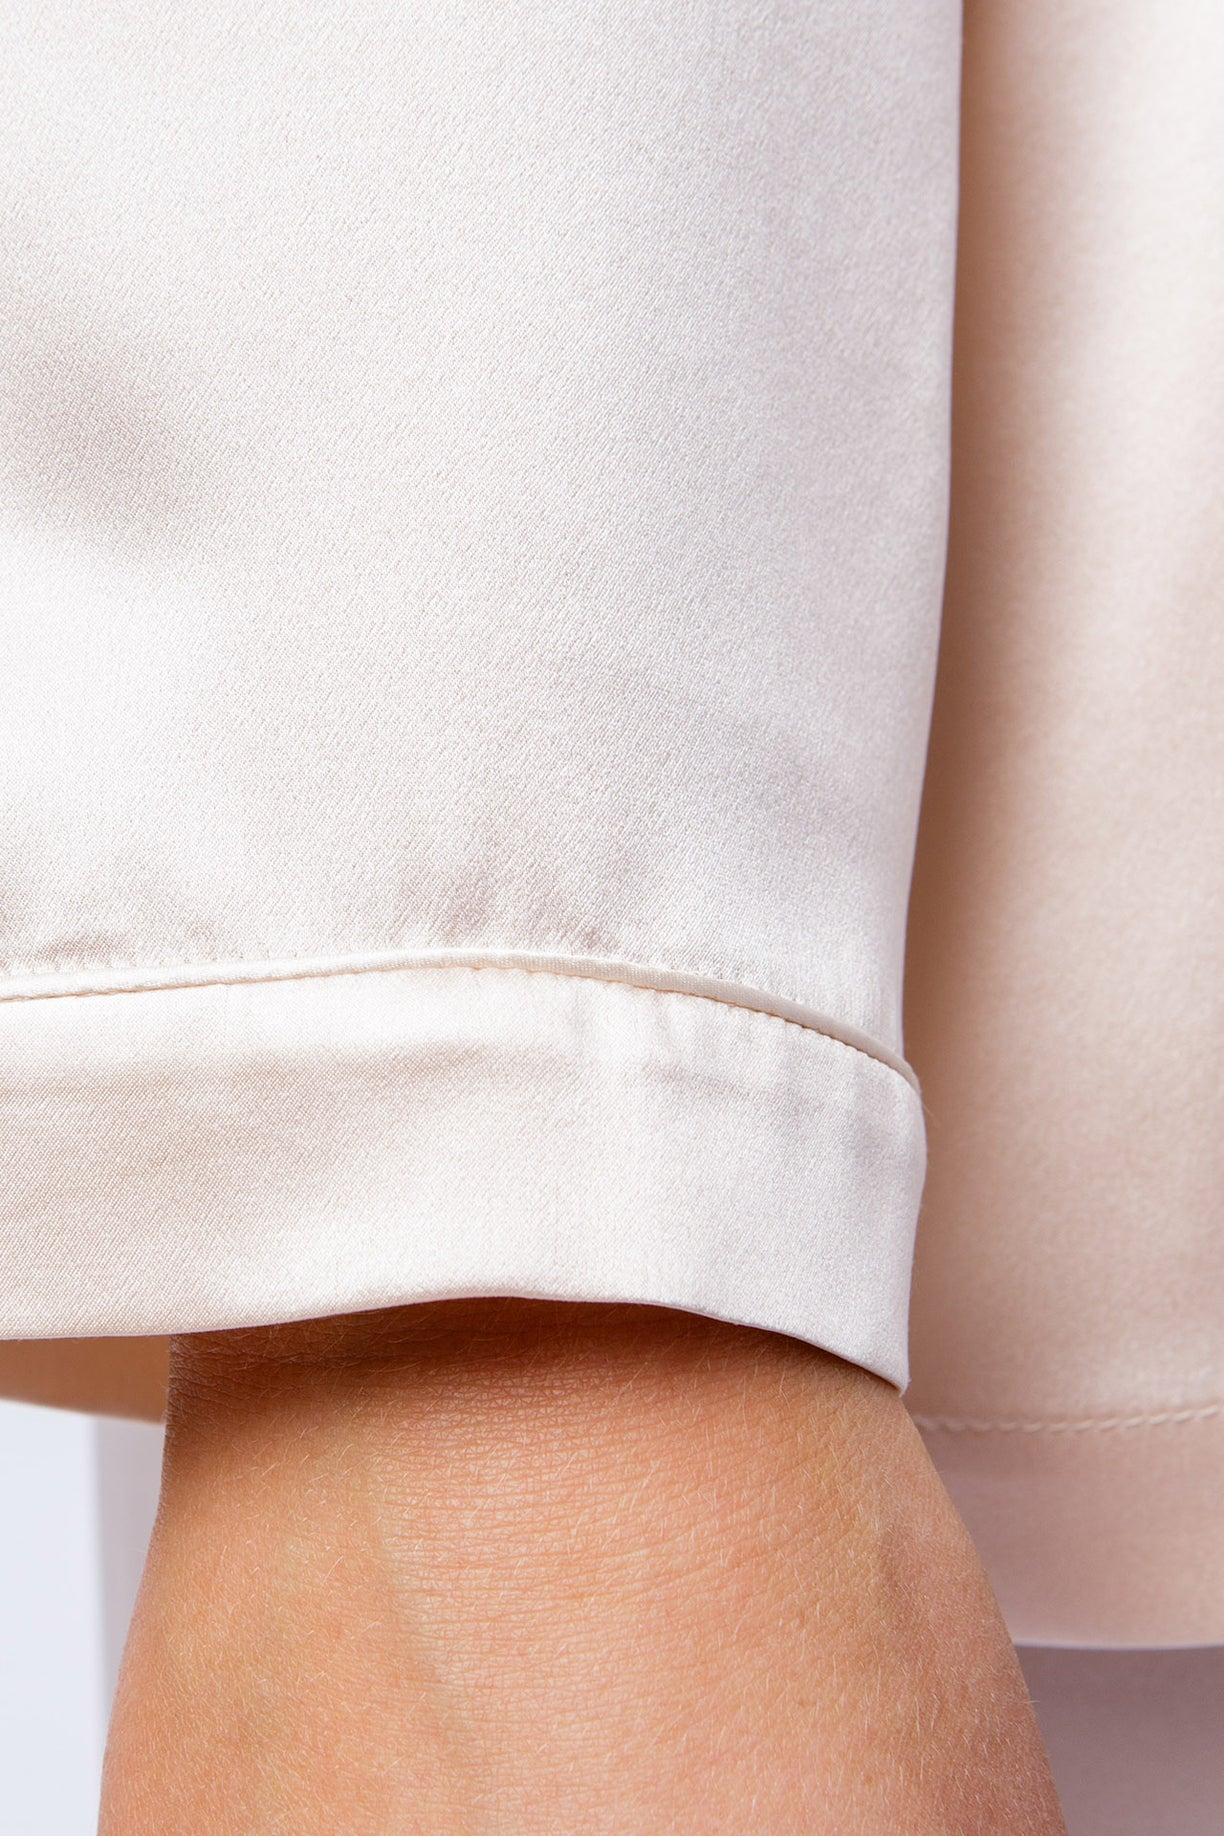 Ann shirt in blush, cuff closeup